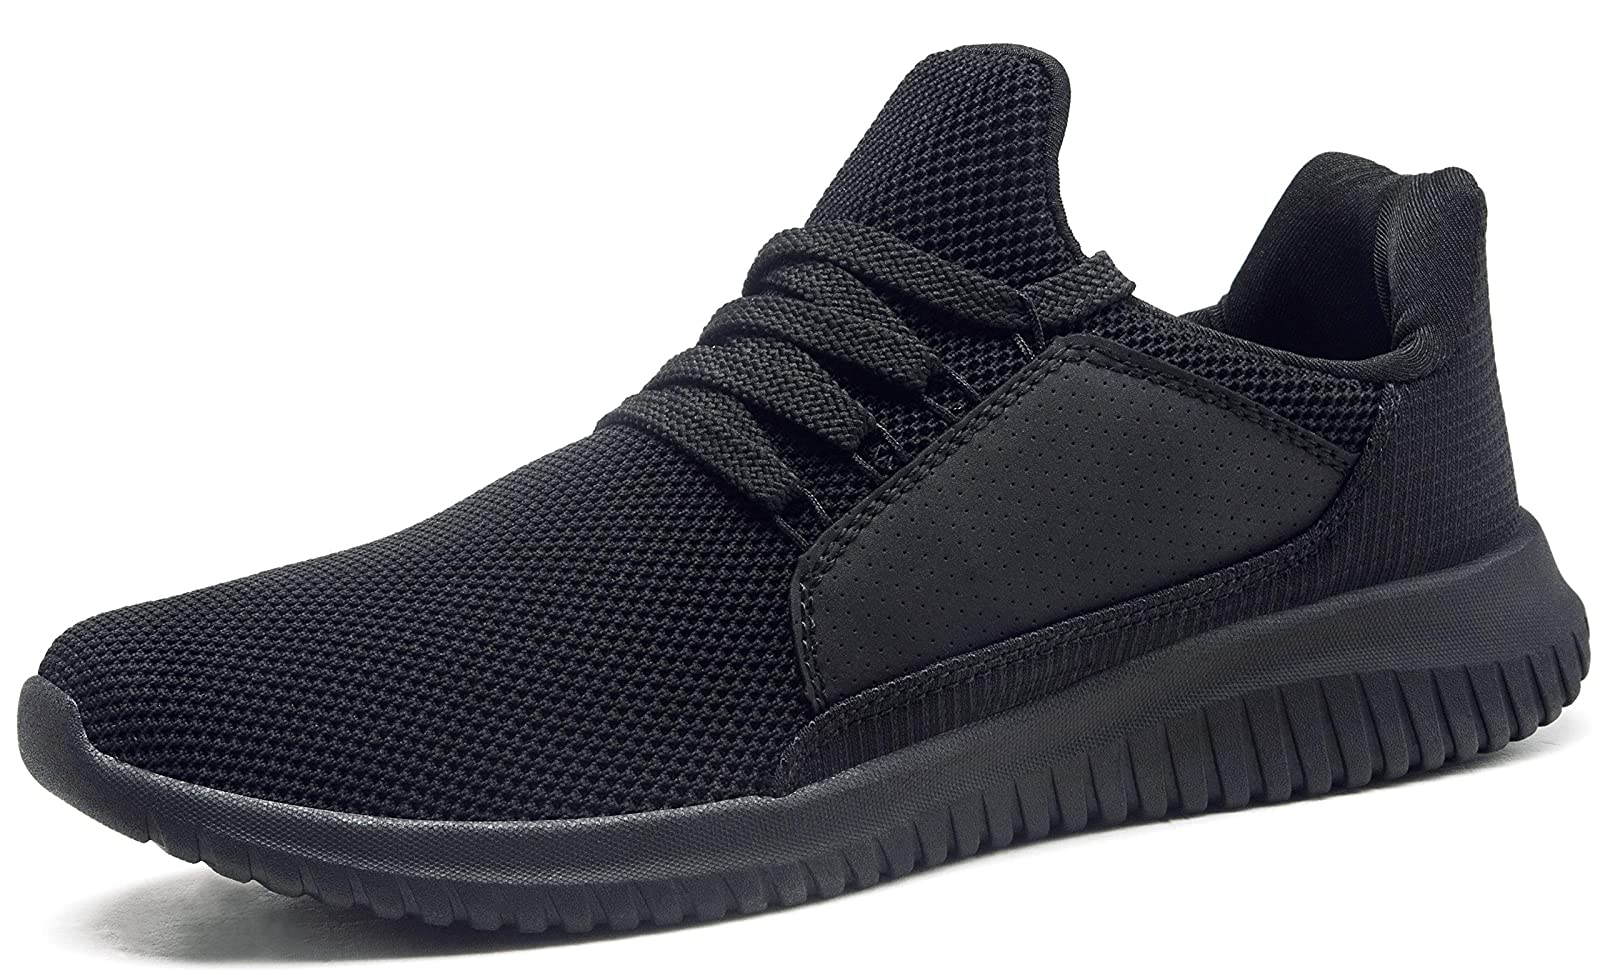 Krystory Casual Running SneakersMen and Women Breathable - 1